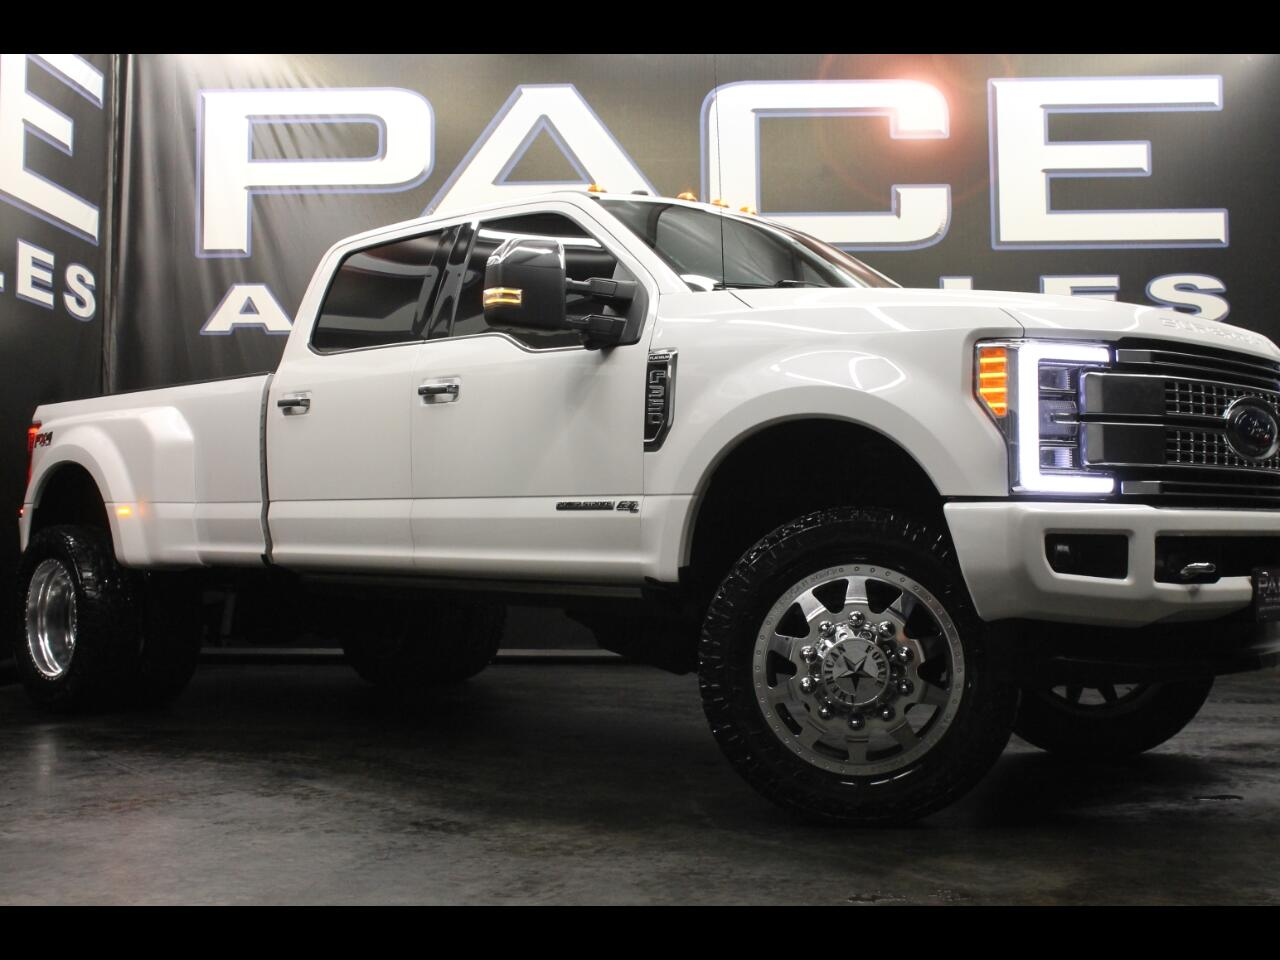 2018 Ford Super Duty F-350 DRW Platinum 4WD Crew FX4 Lifted Custom